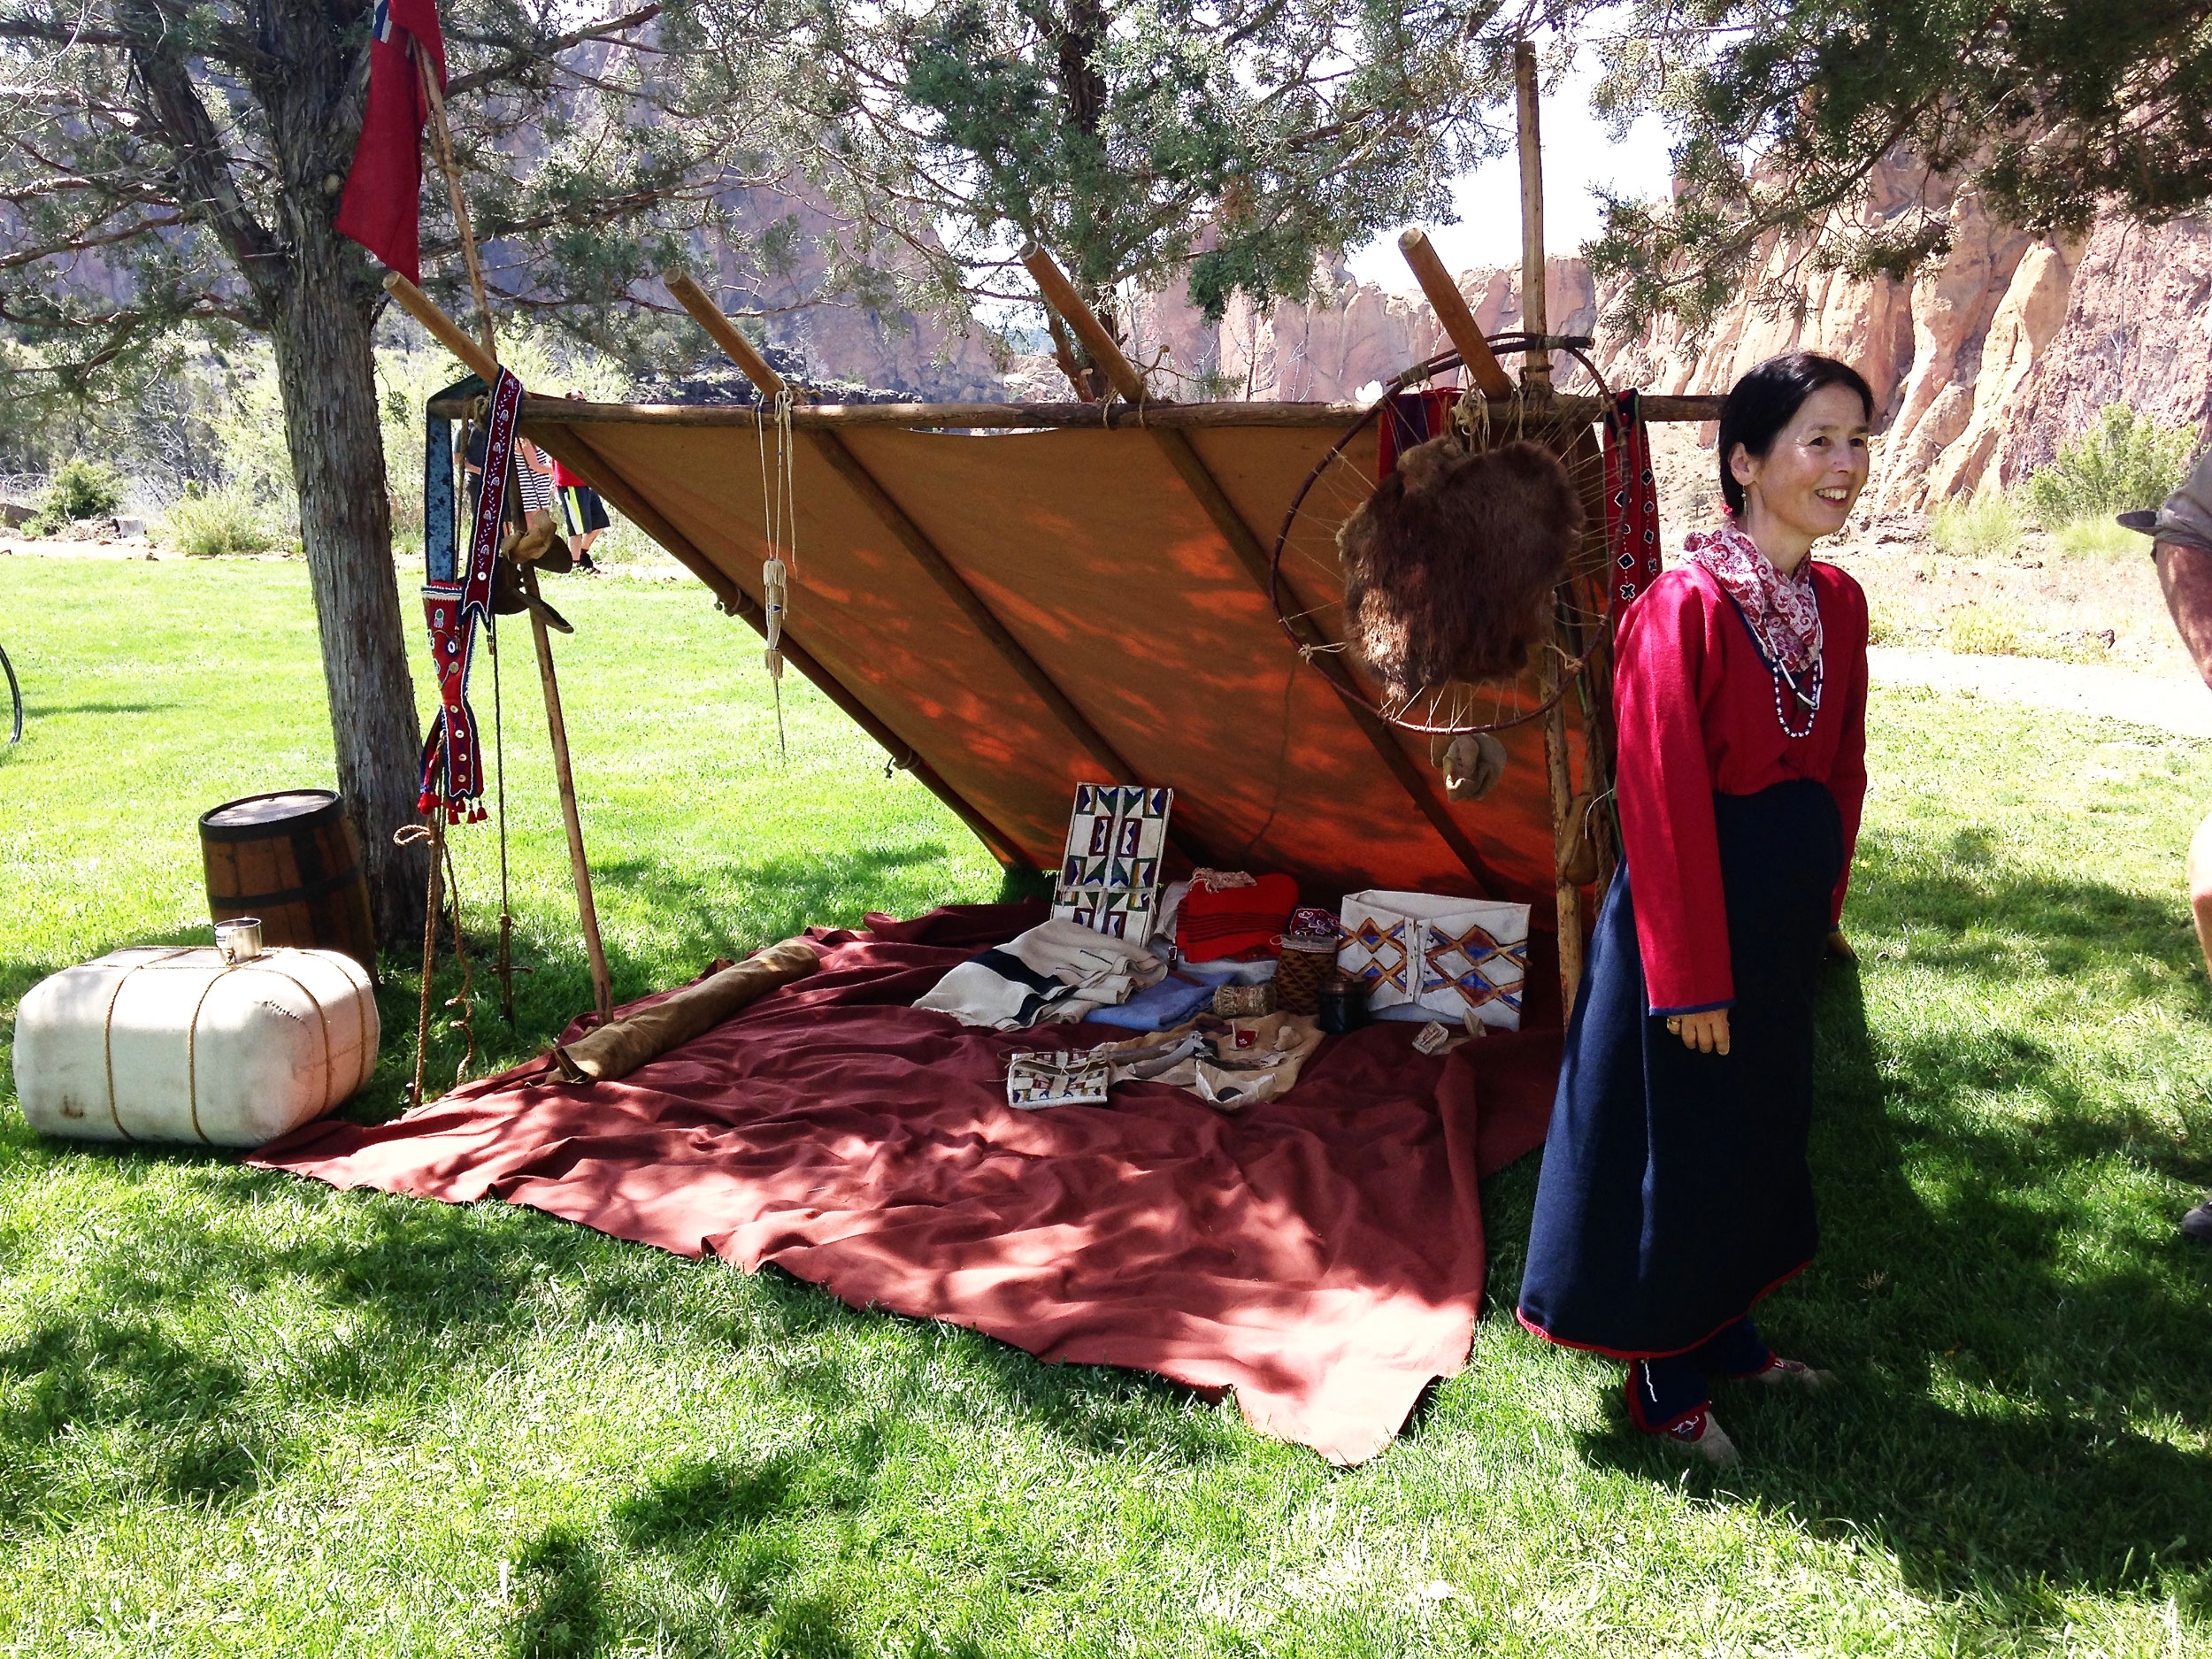 Indian wife of trapper reenactor at Smith Rock State Park